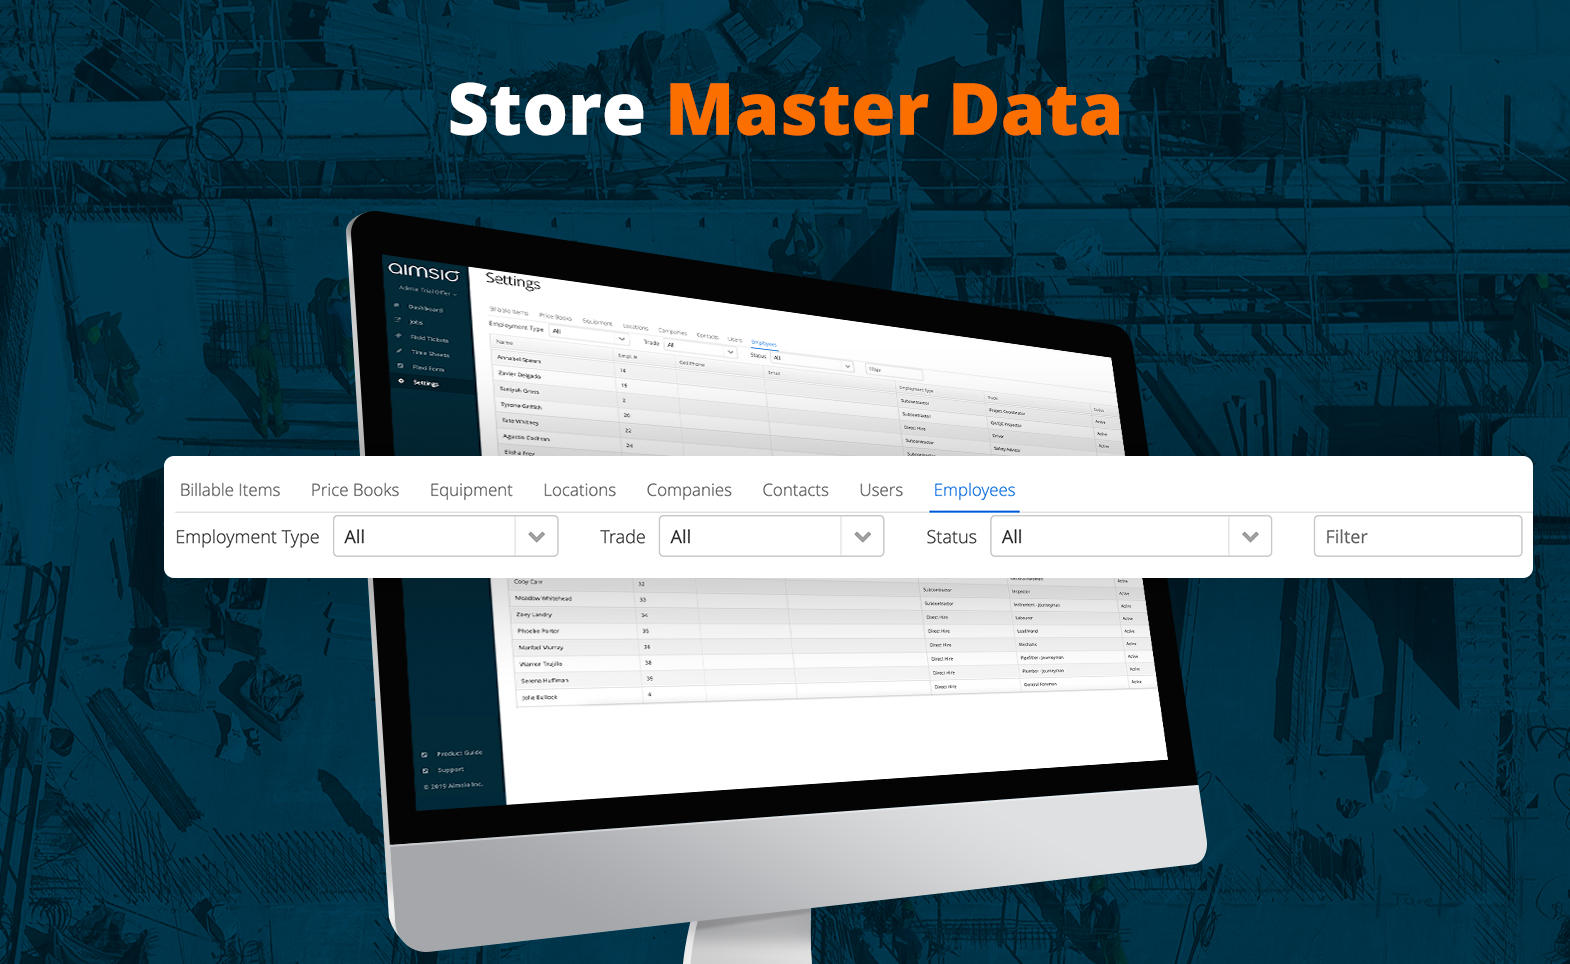 Store Master Data to keep track of employees, equipment, billable items, price books, locations, companies, contacts, and users. Master Data is used throughout Aimsio to make filling out tickets and timesheets simple.